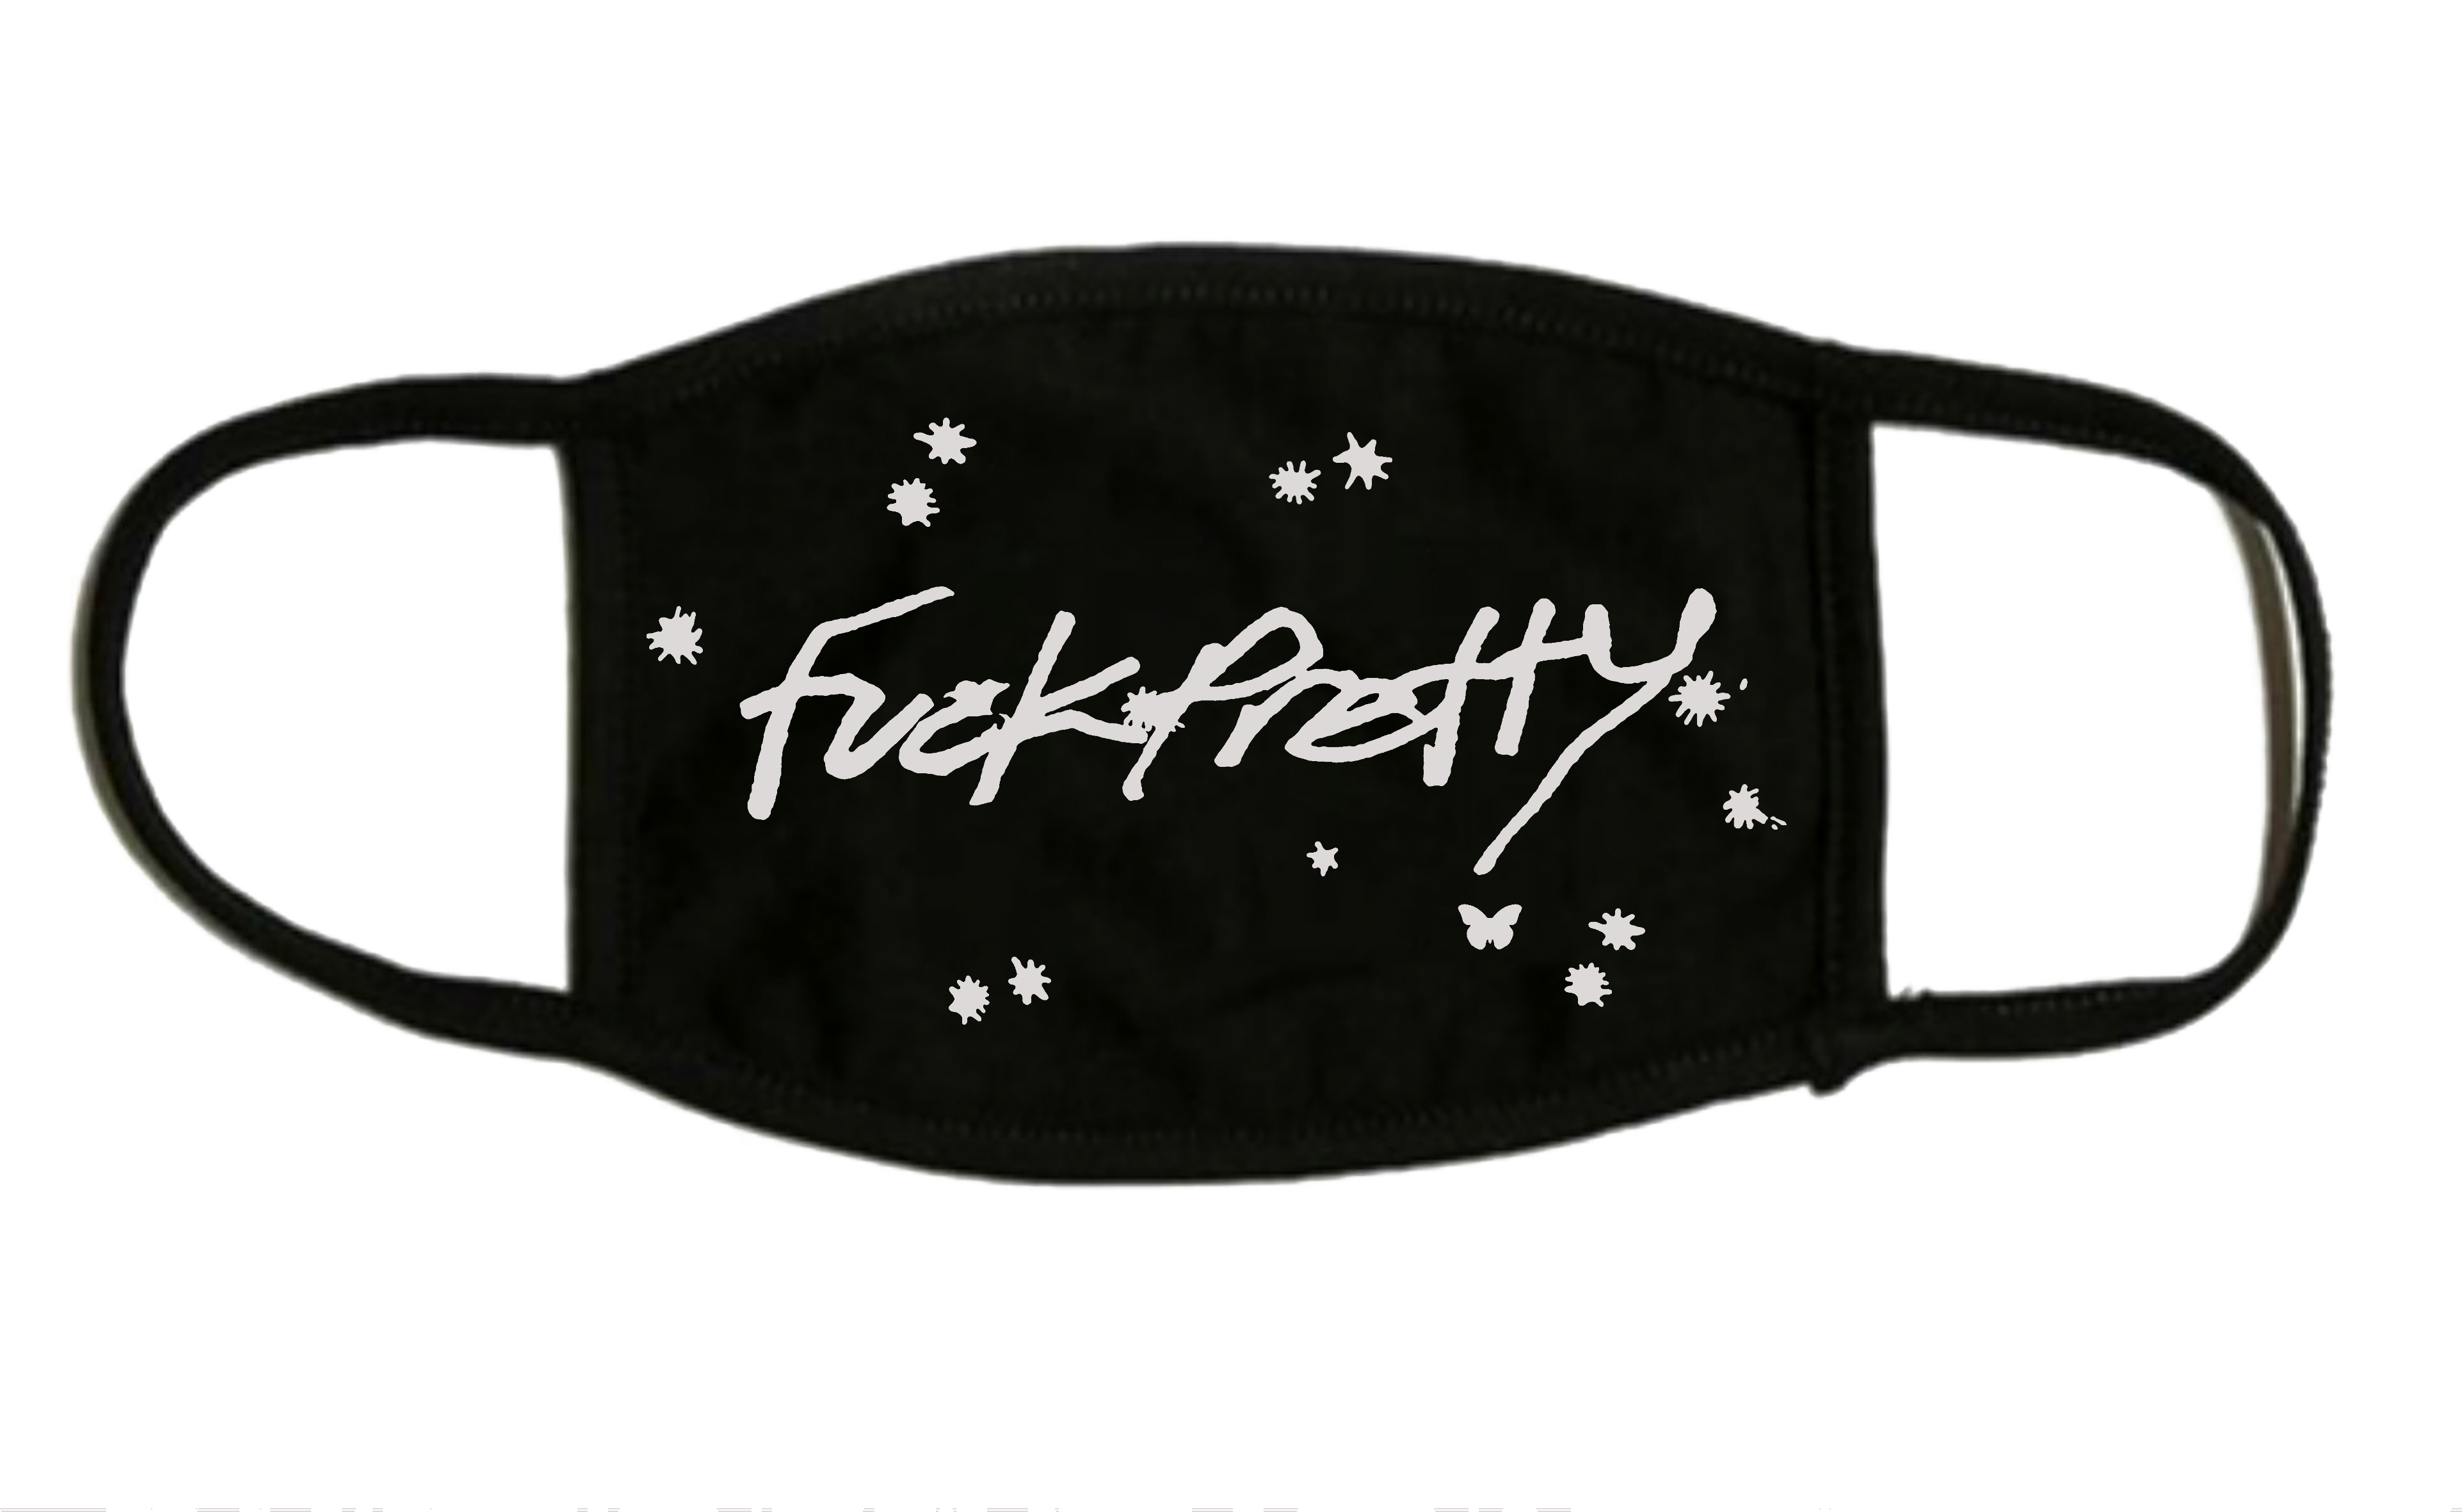 Fuck Pretty Face Mask